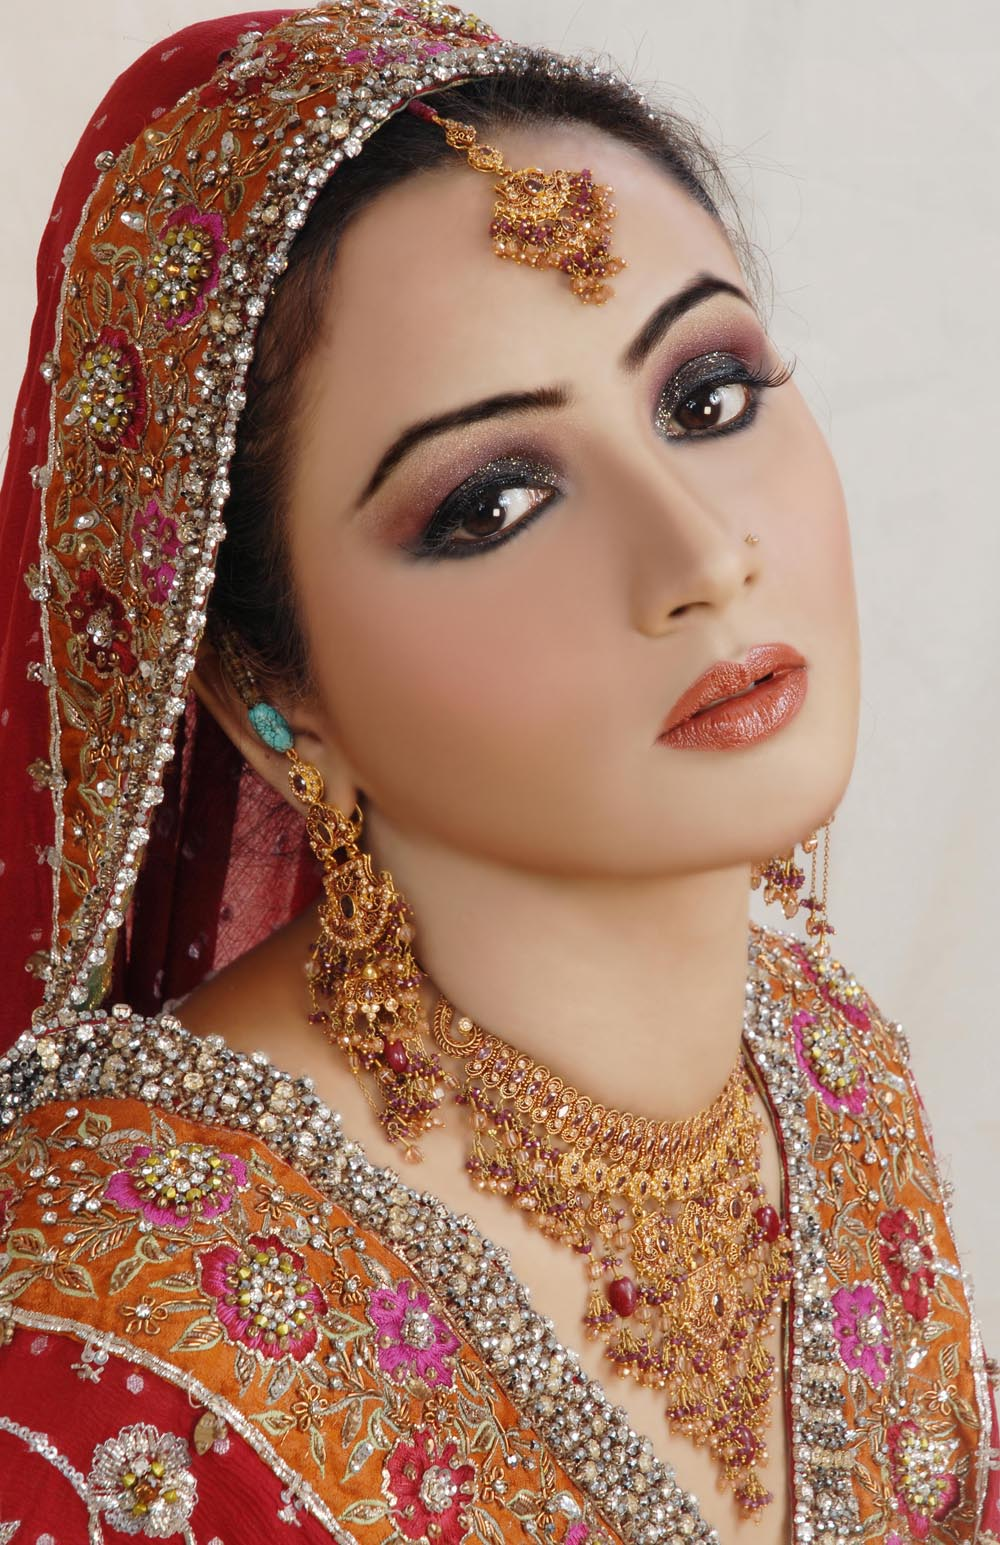 Bridal Makeup Online : Popular Skin Care Treatments For The Indian Bride - India ...